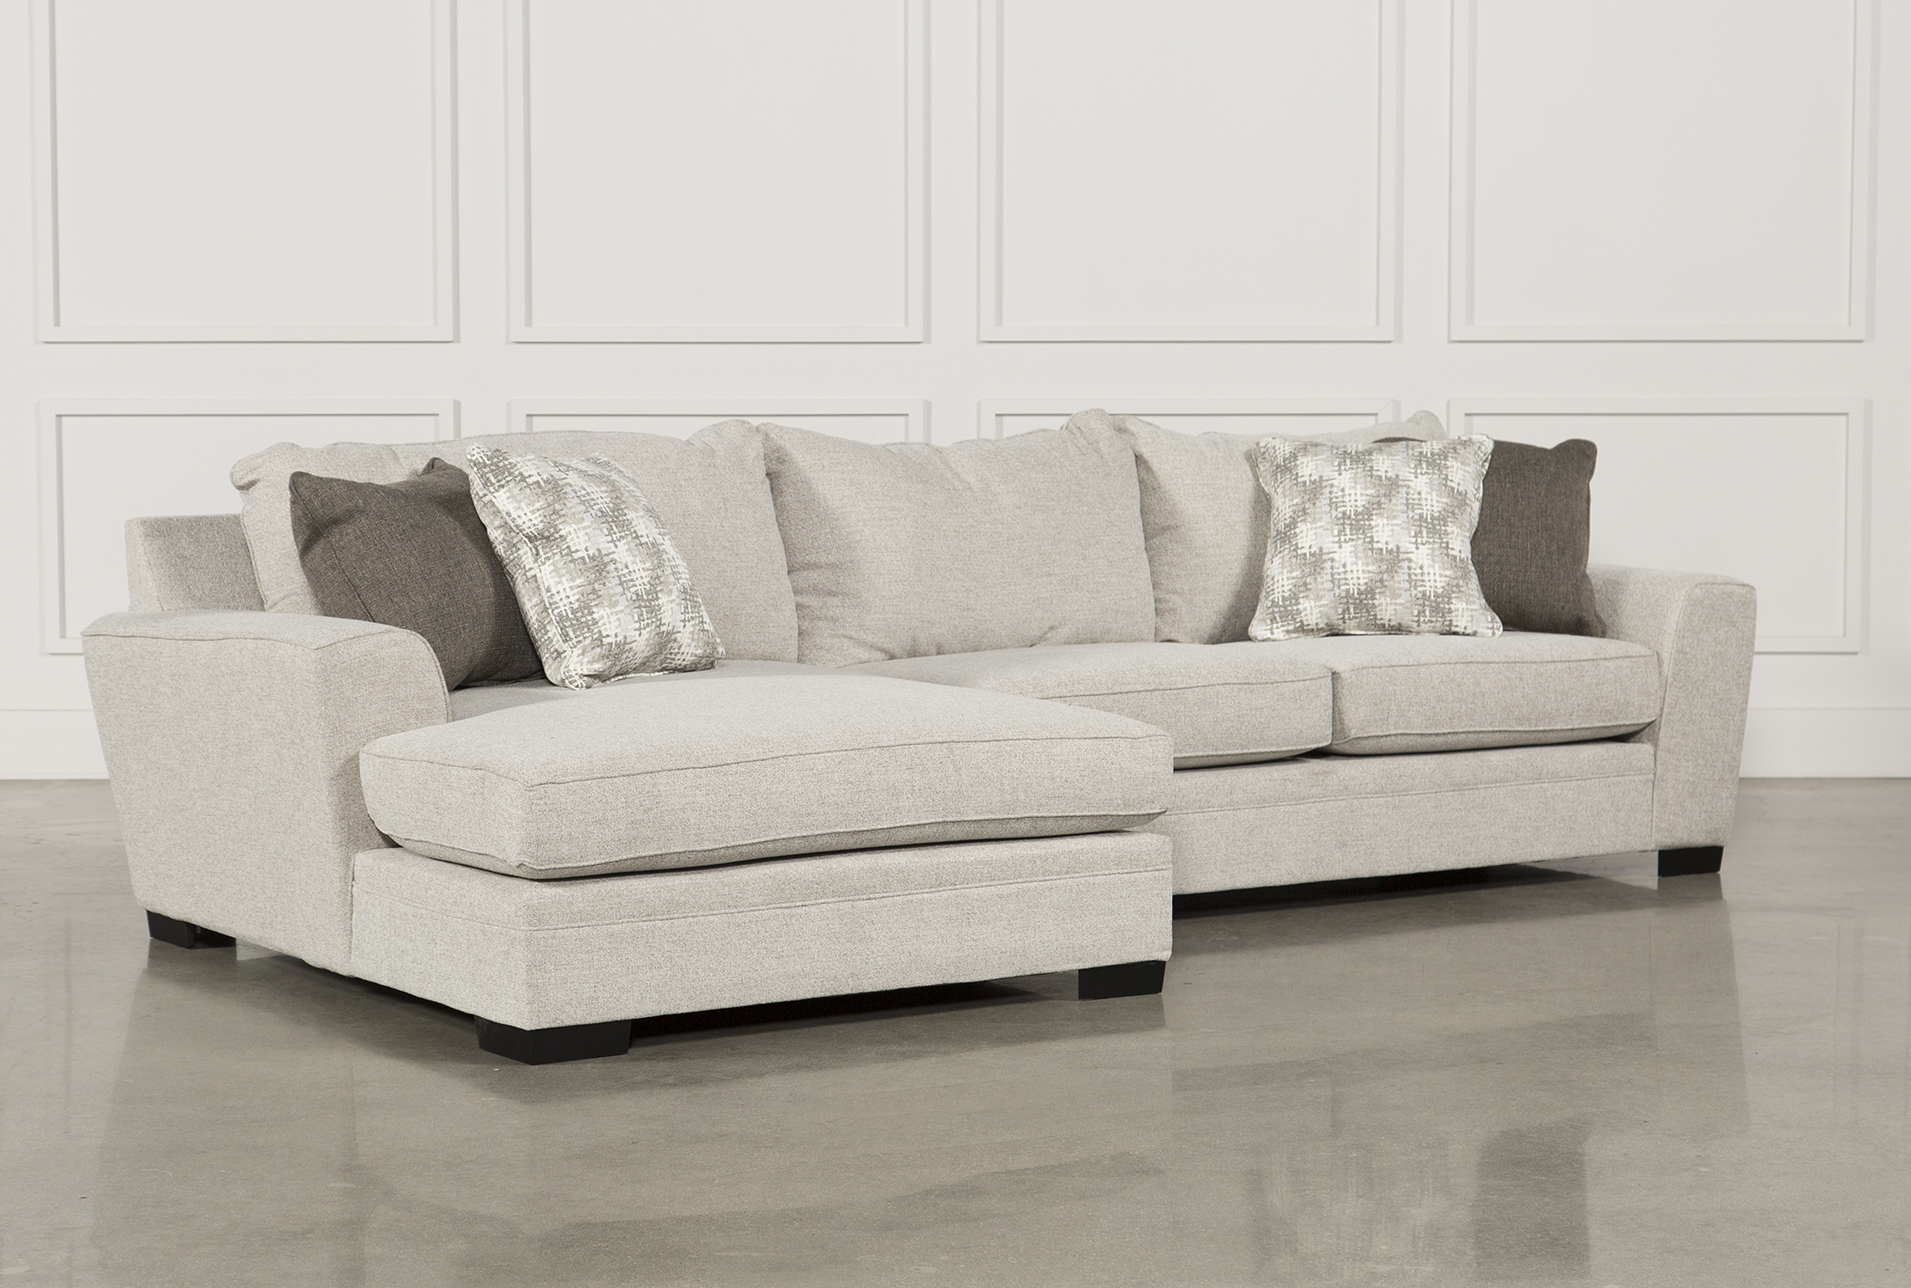 Delano 2 Piece Sectional W/Laf Oversized Chaise   360